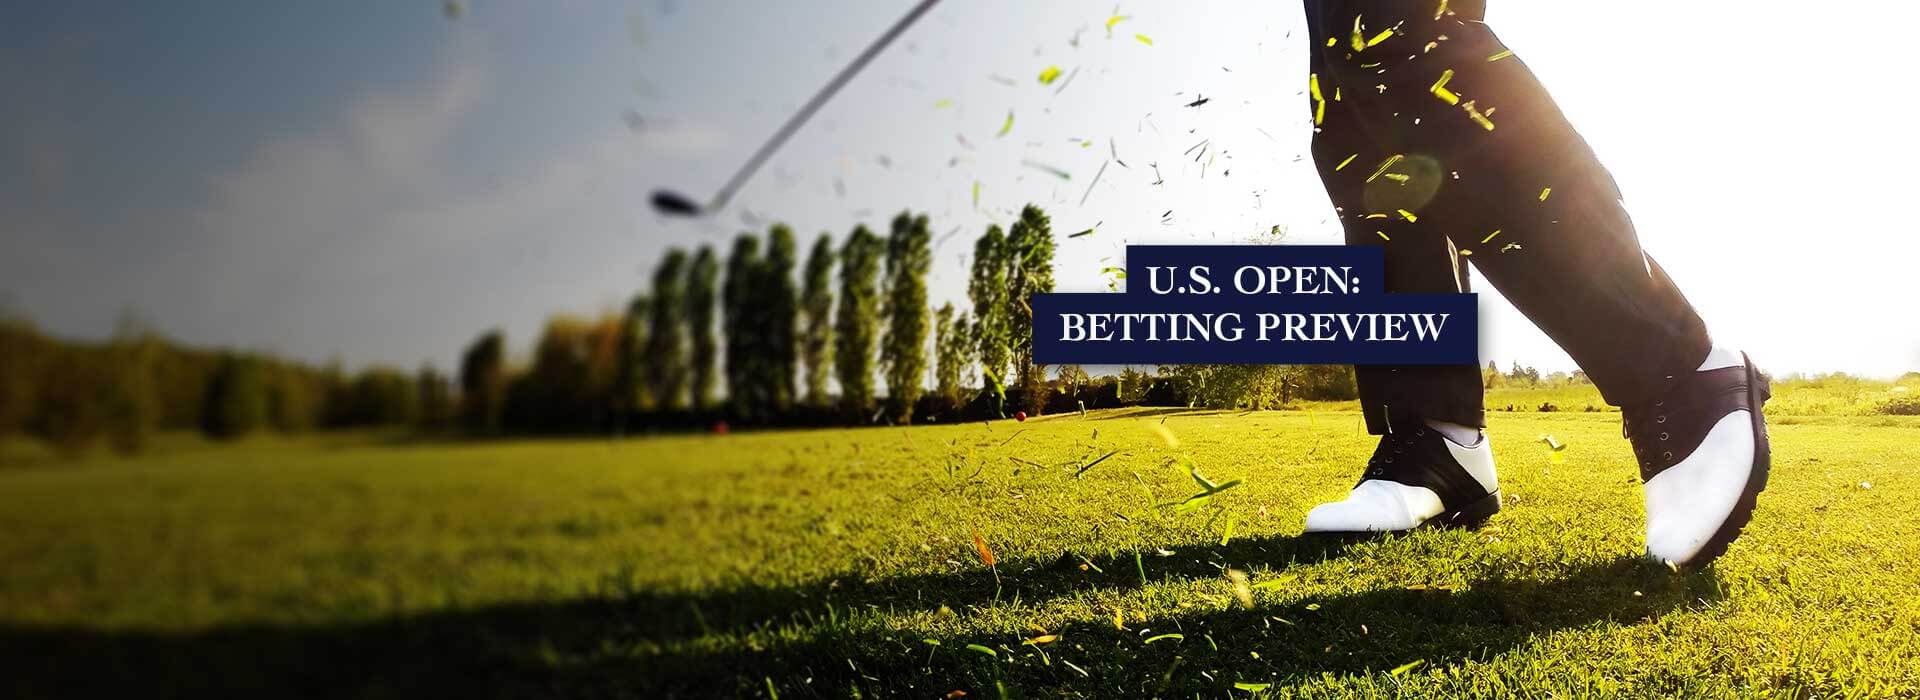 Golf: U.S. Open Betting Preview